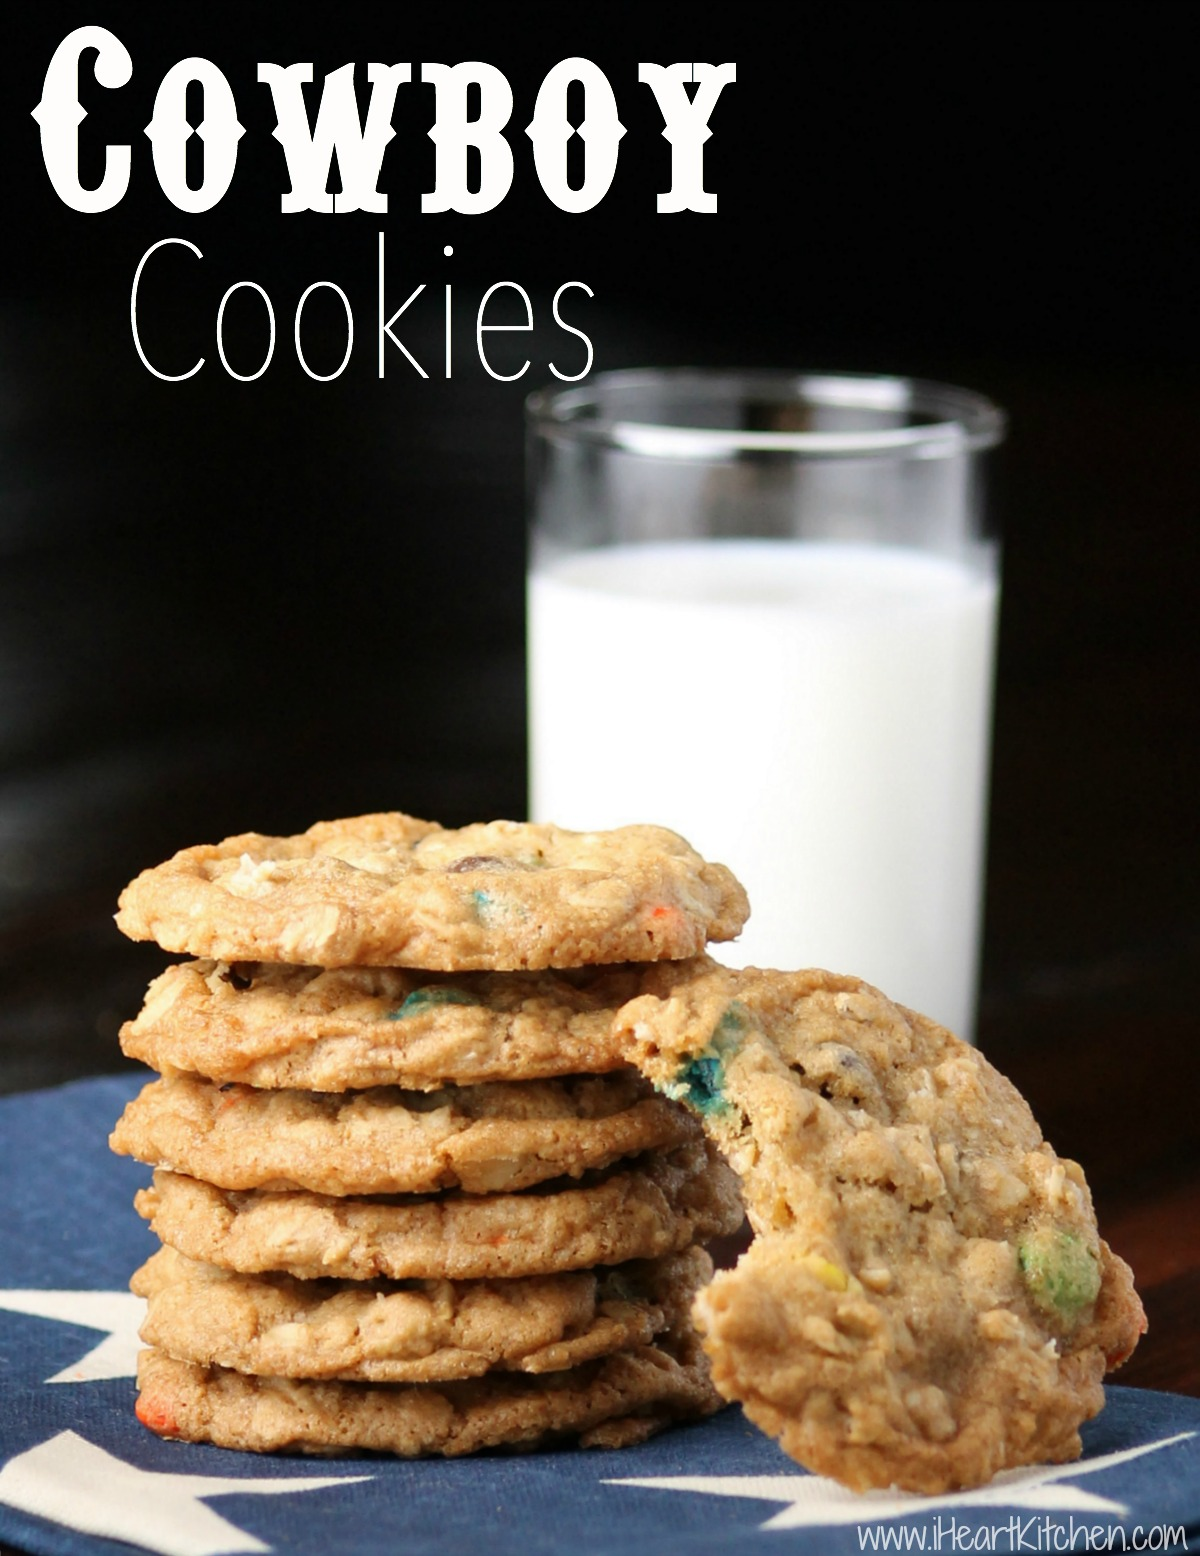 Cowboy Cookies - Crunchy, Chewy & Delicious! - I Heart Kitchen